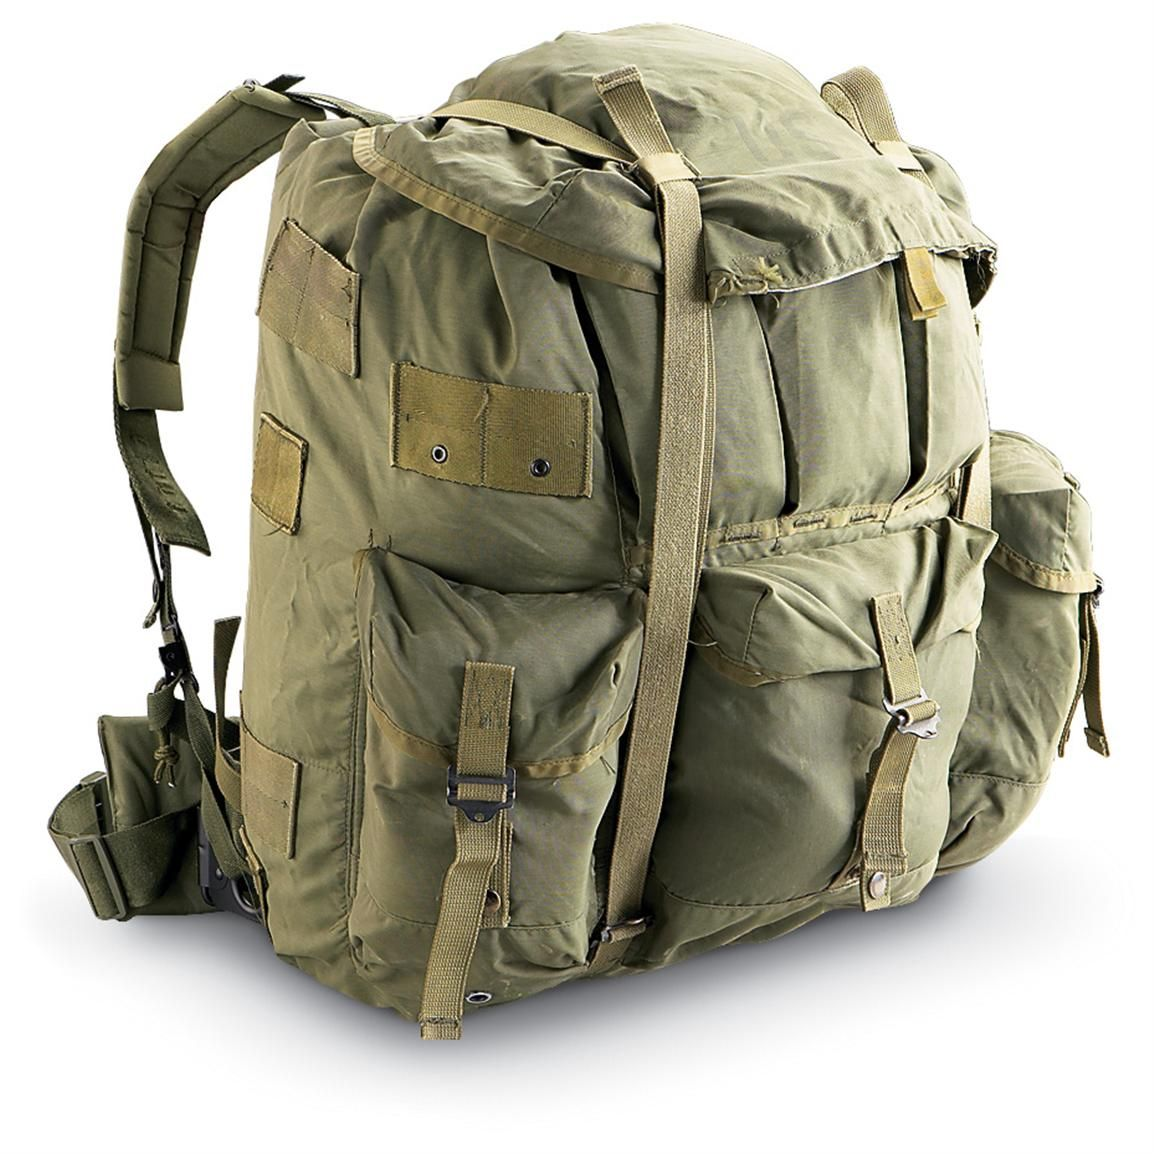 used us military surplus large alice pack with metal frame